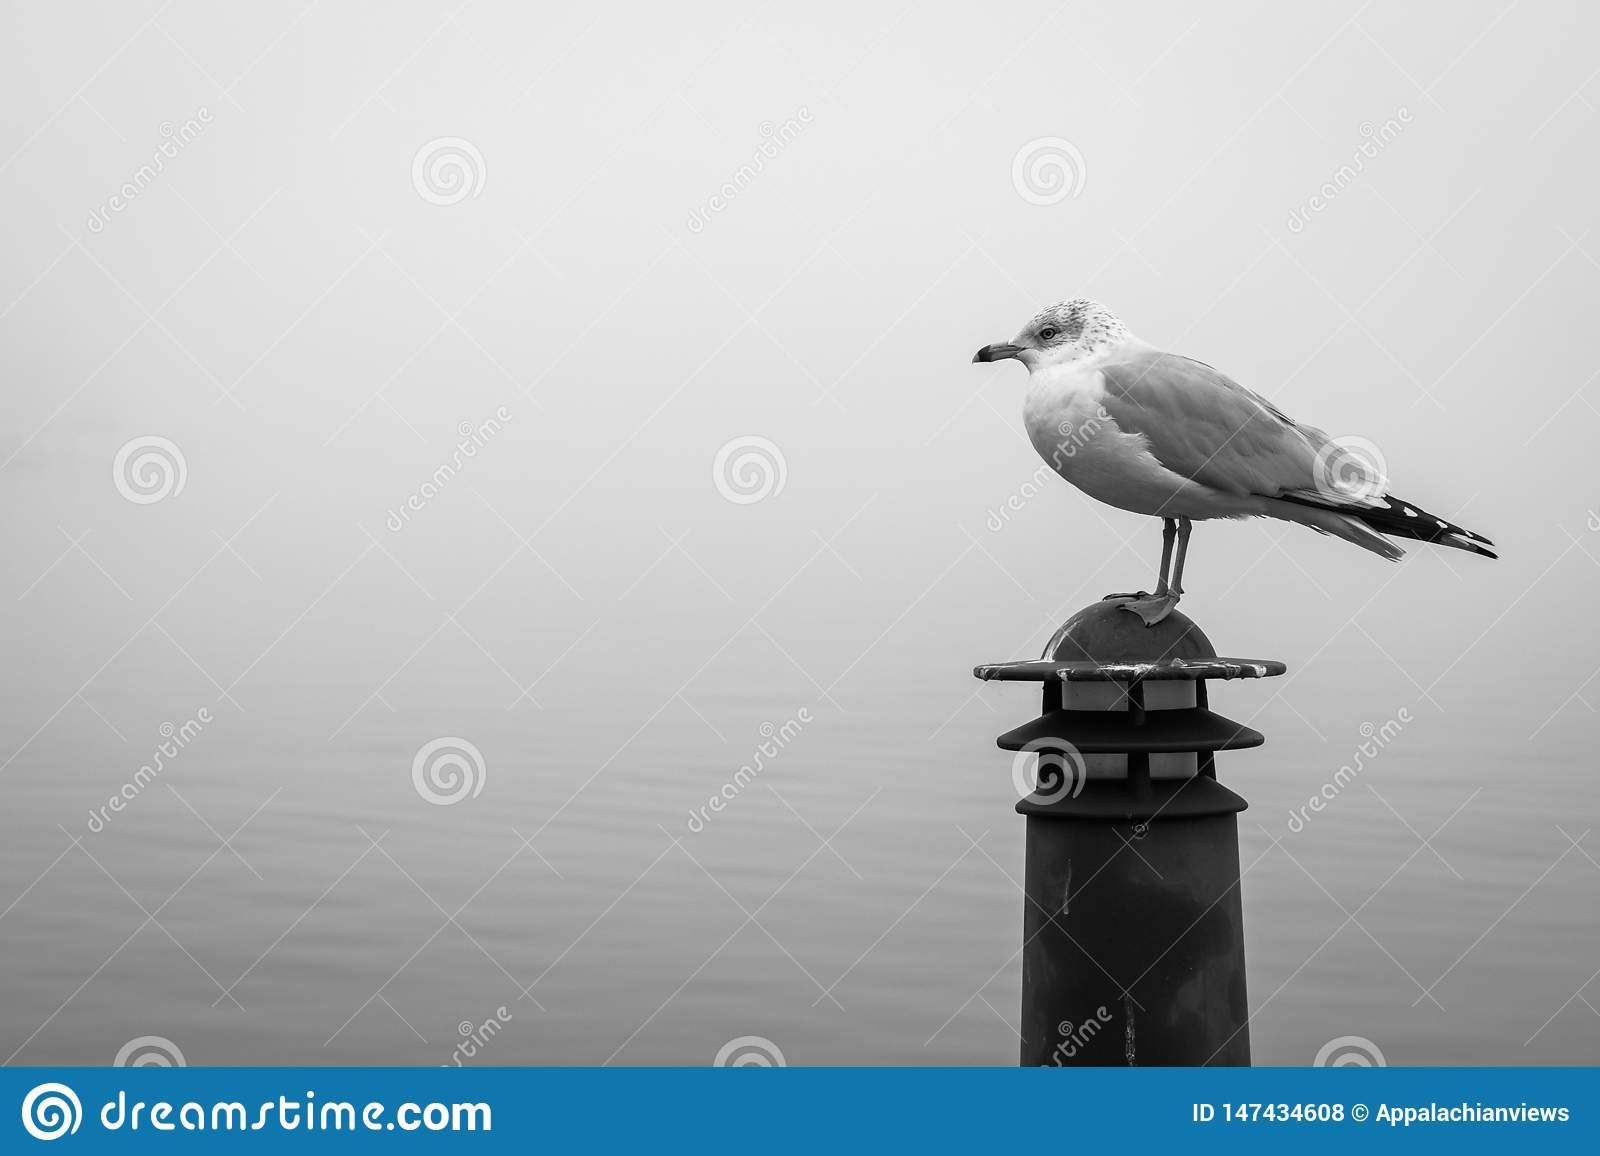 Seagull in Fells Point, Baltimore, Maryland